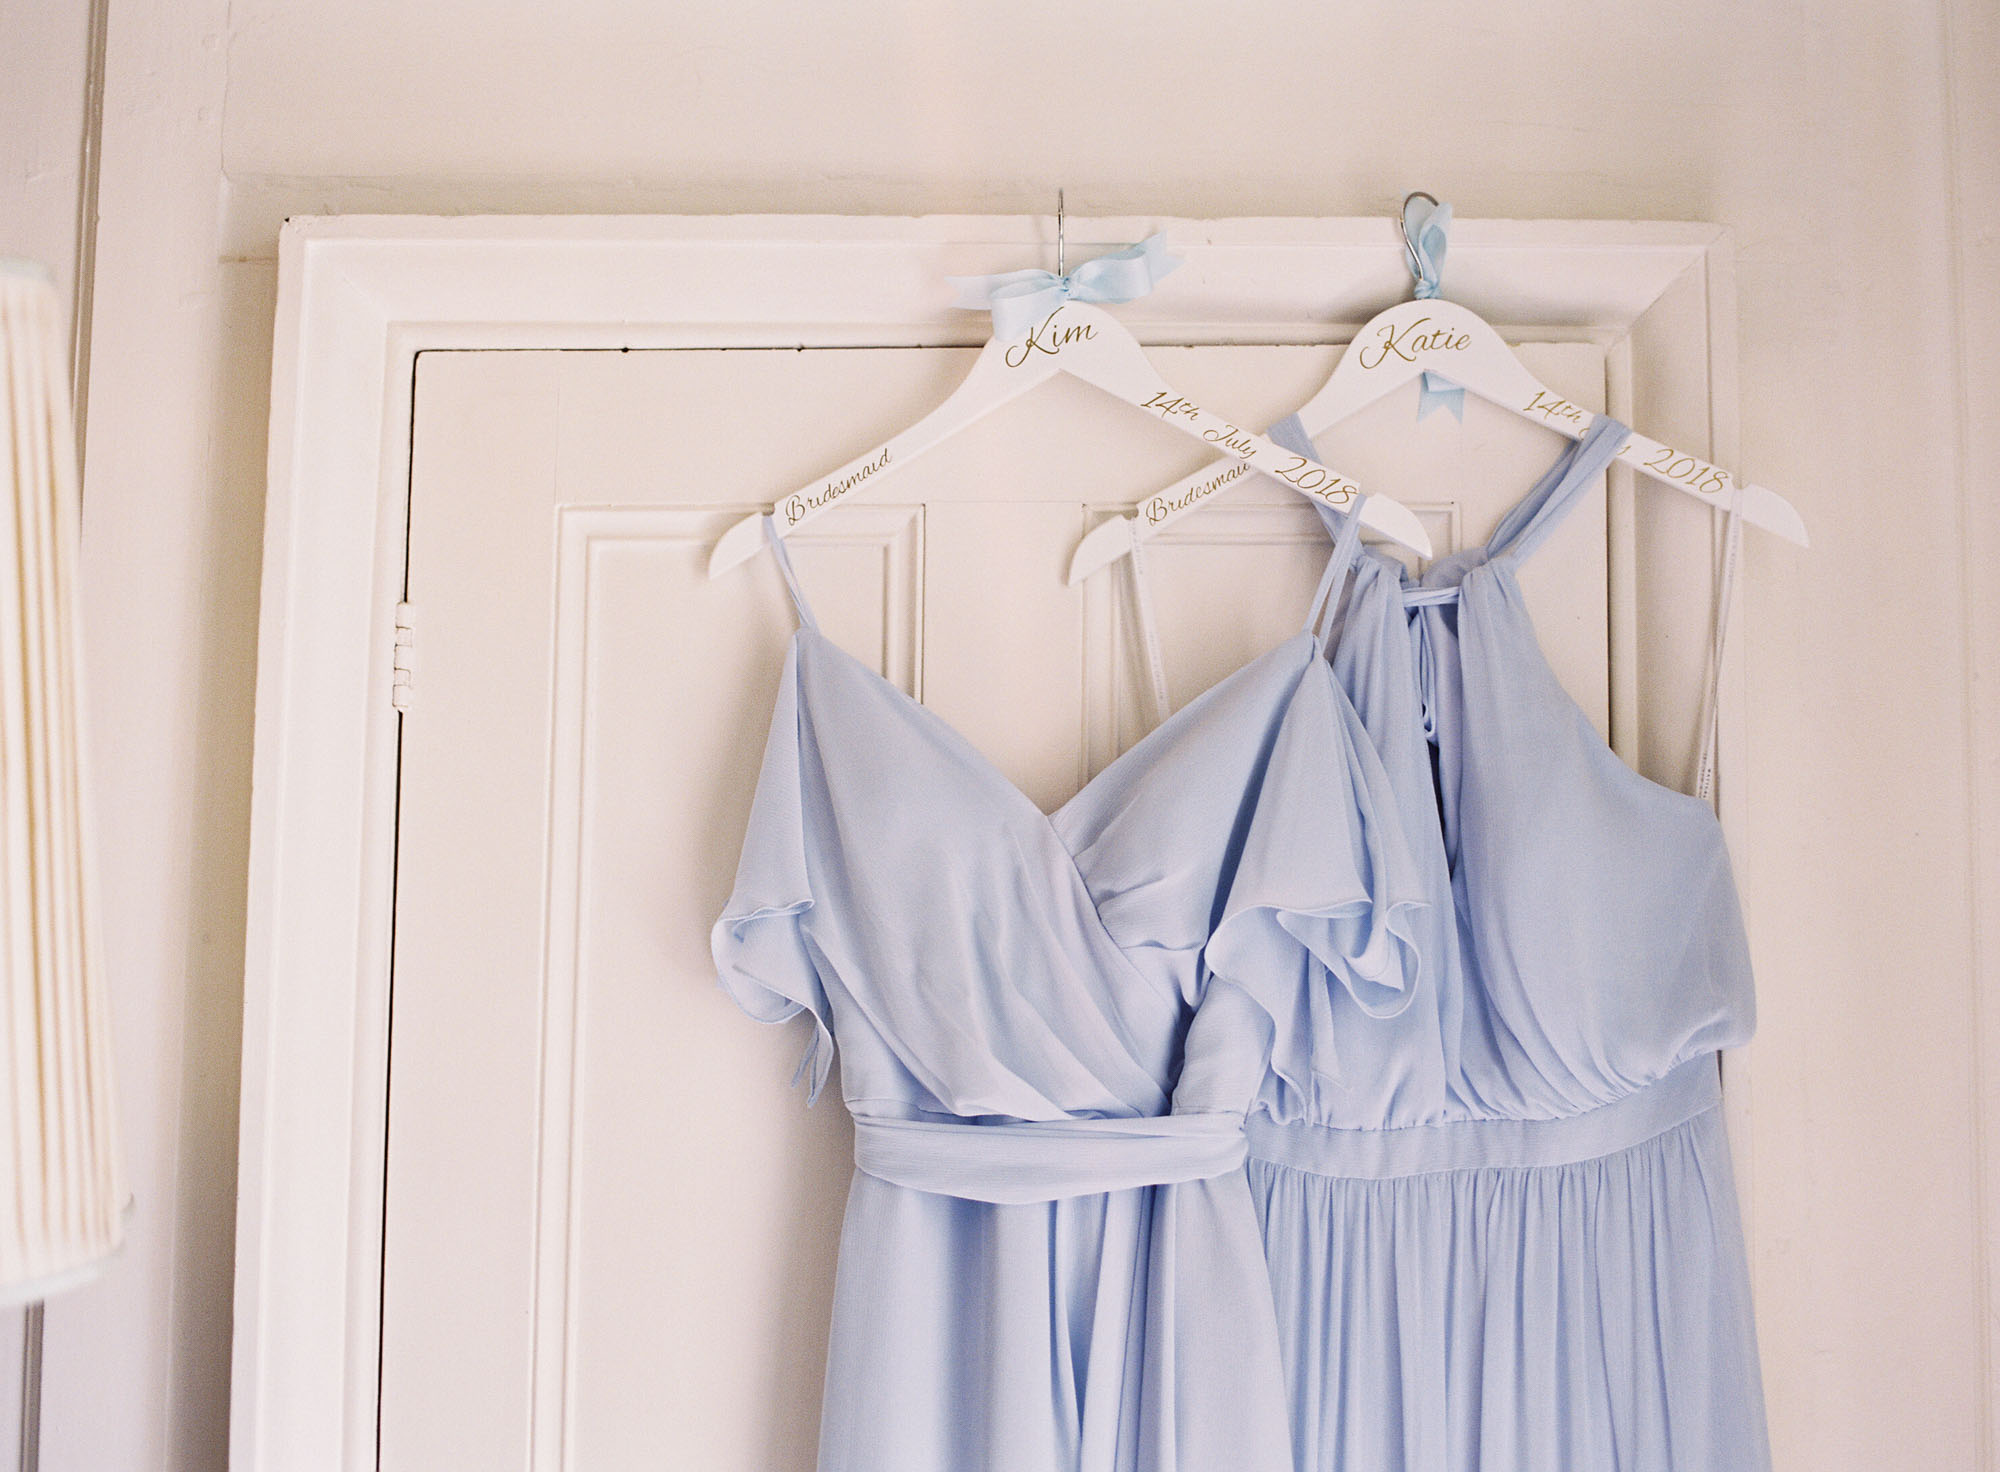 Blue chiffon bridesmaids dresses hanging on doorframe at Chiddingstone Castle